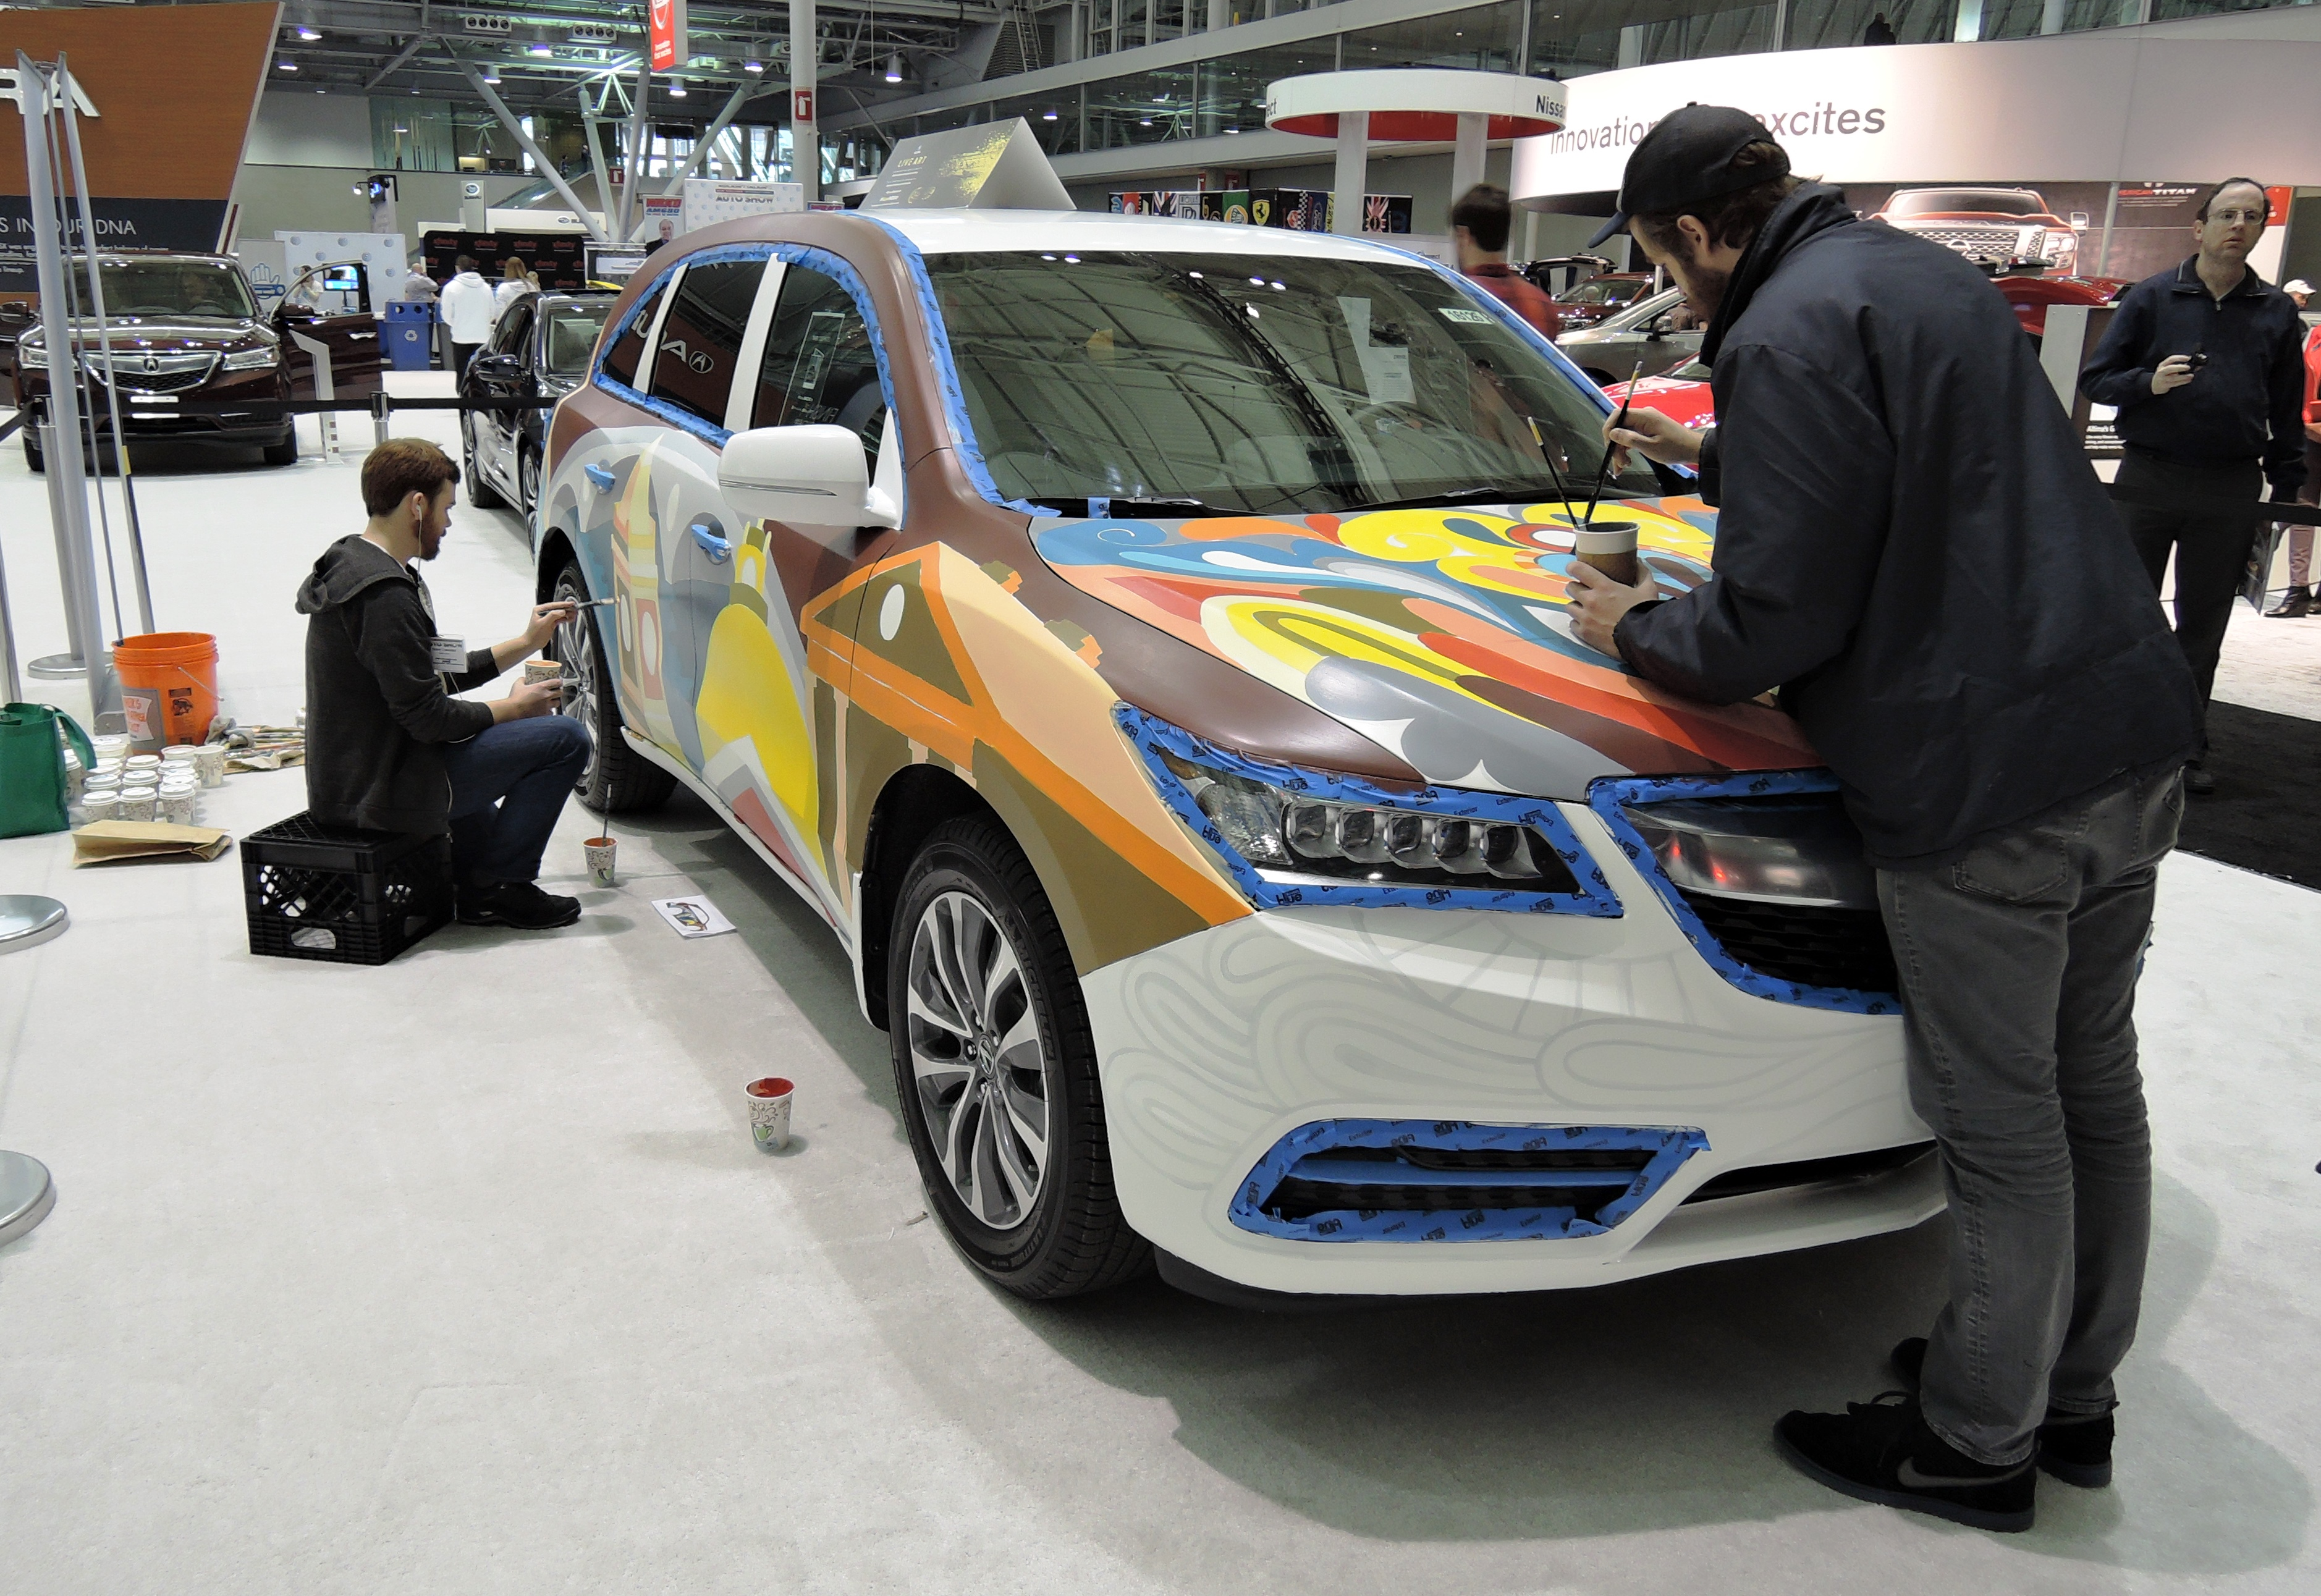 hand painted Acura - new England auto show